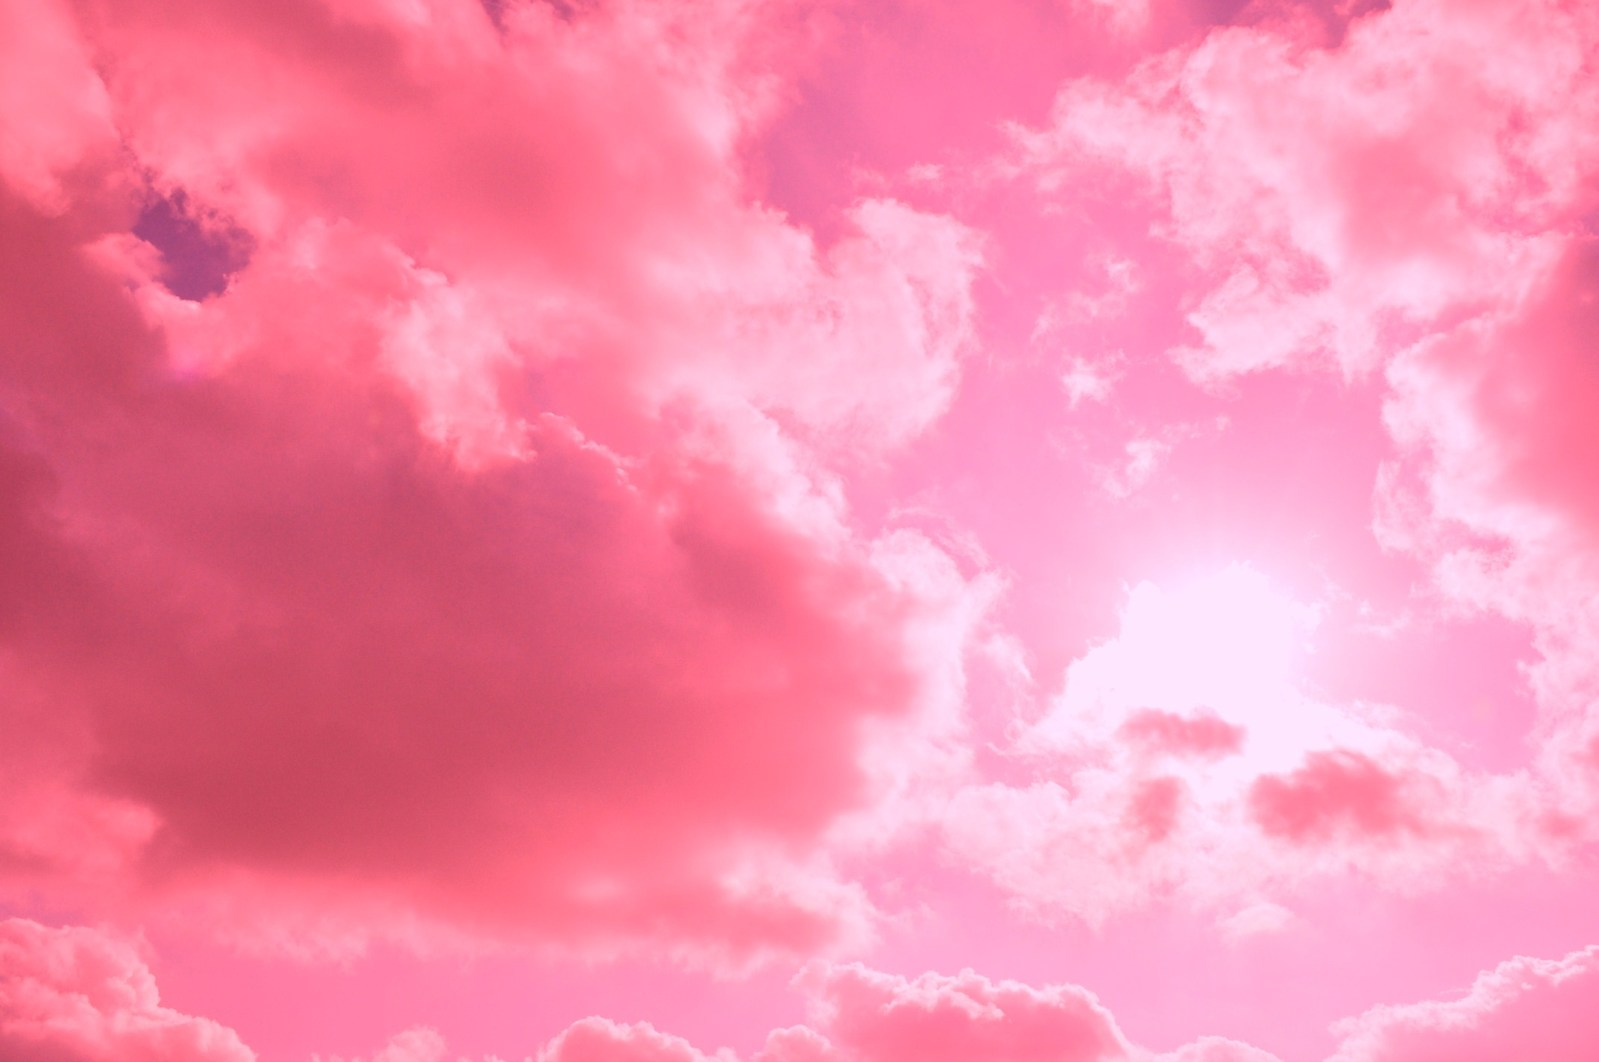 Aesthetic Pink Background wallpaper collections at